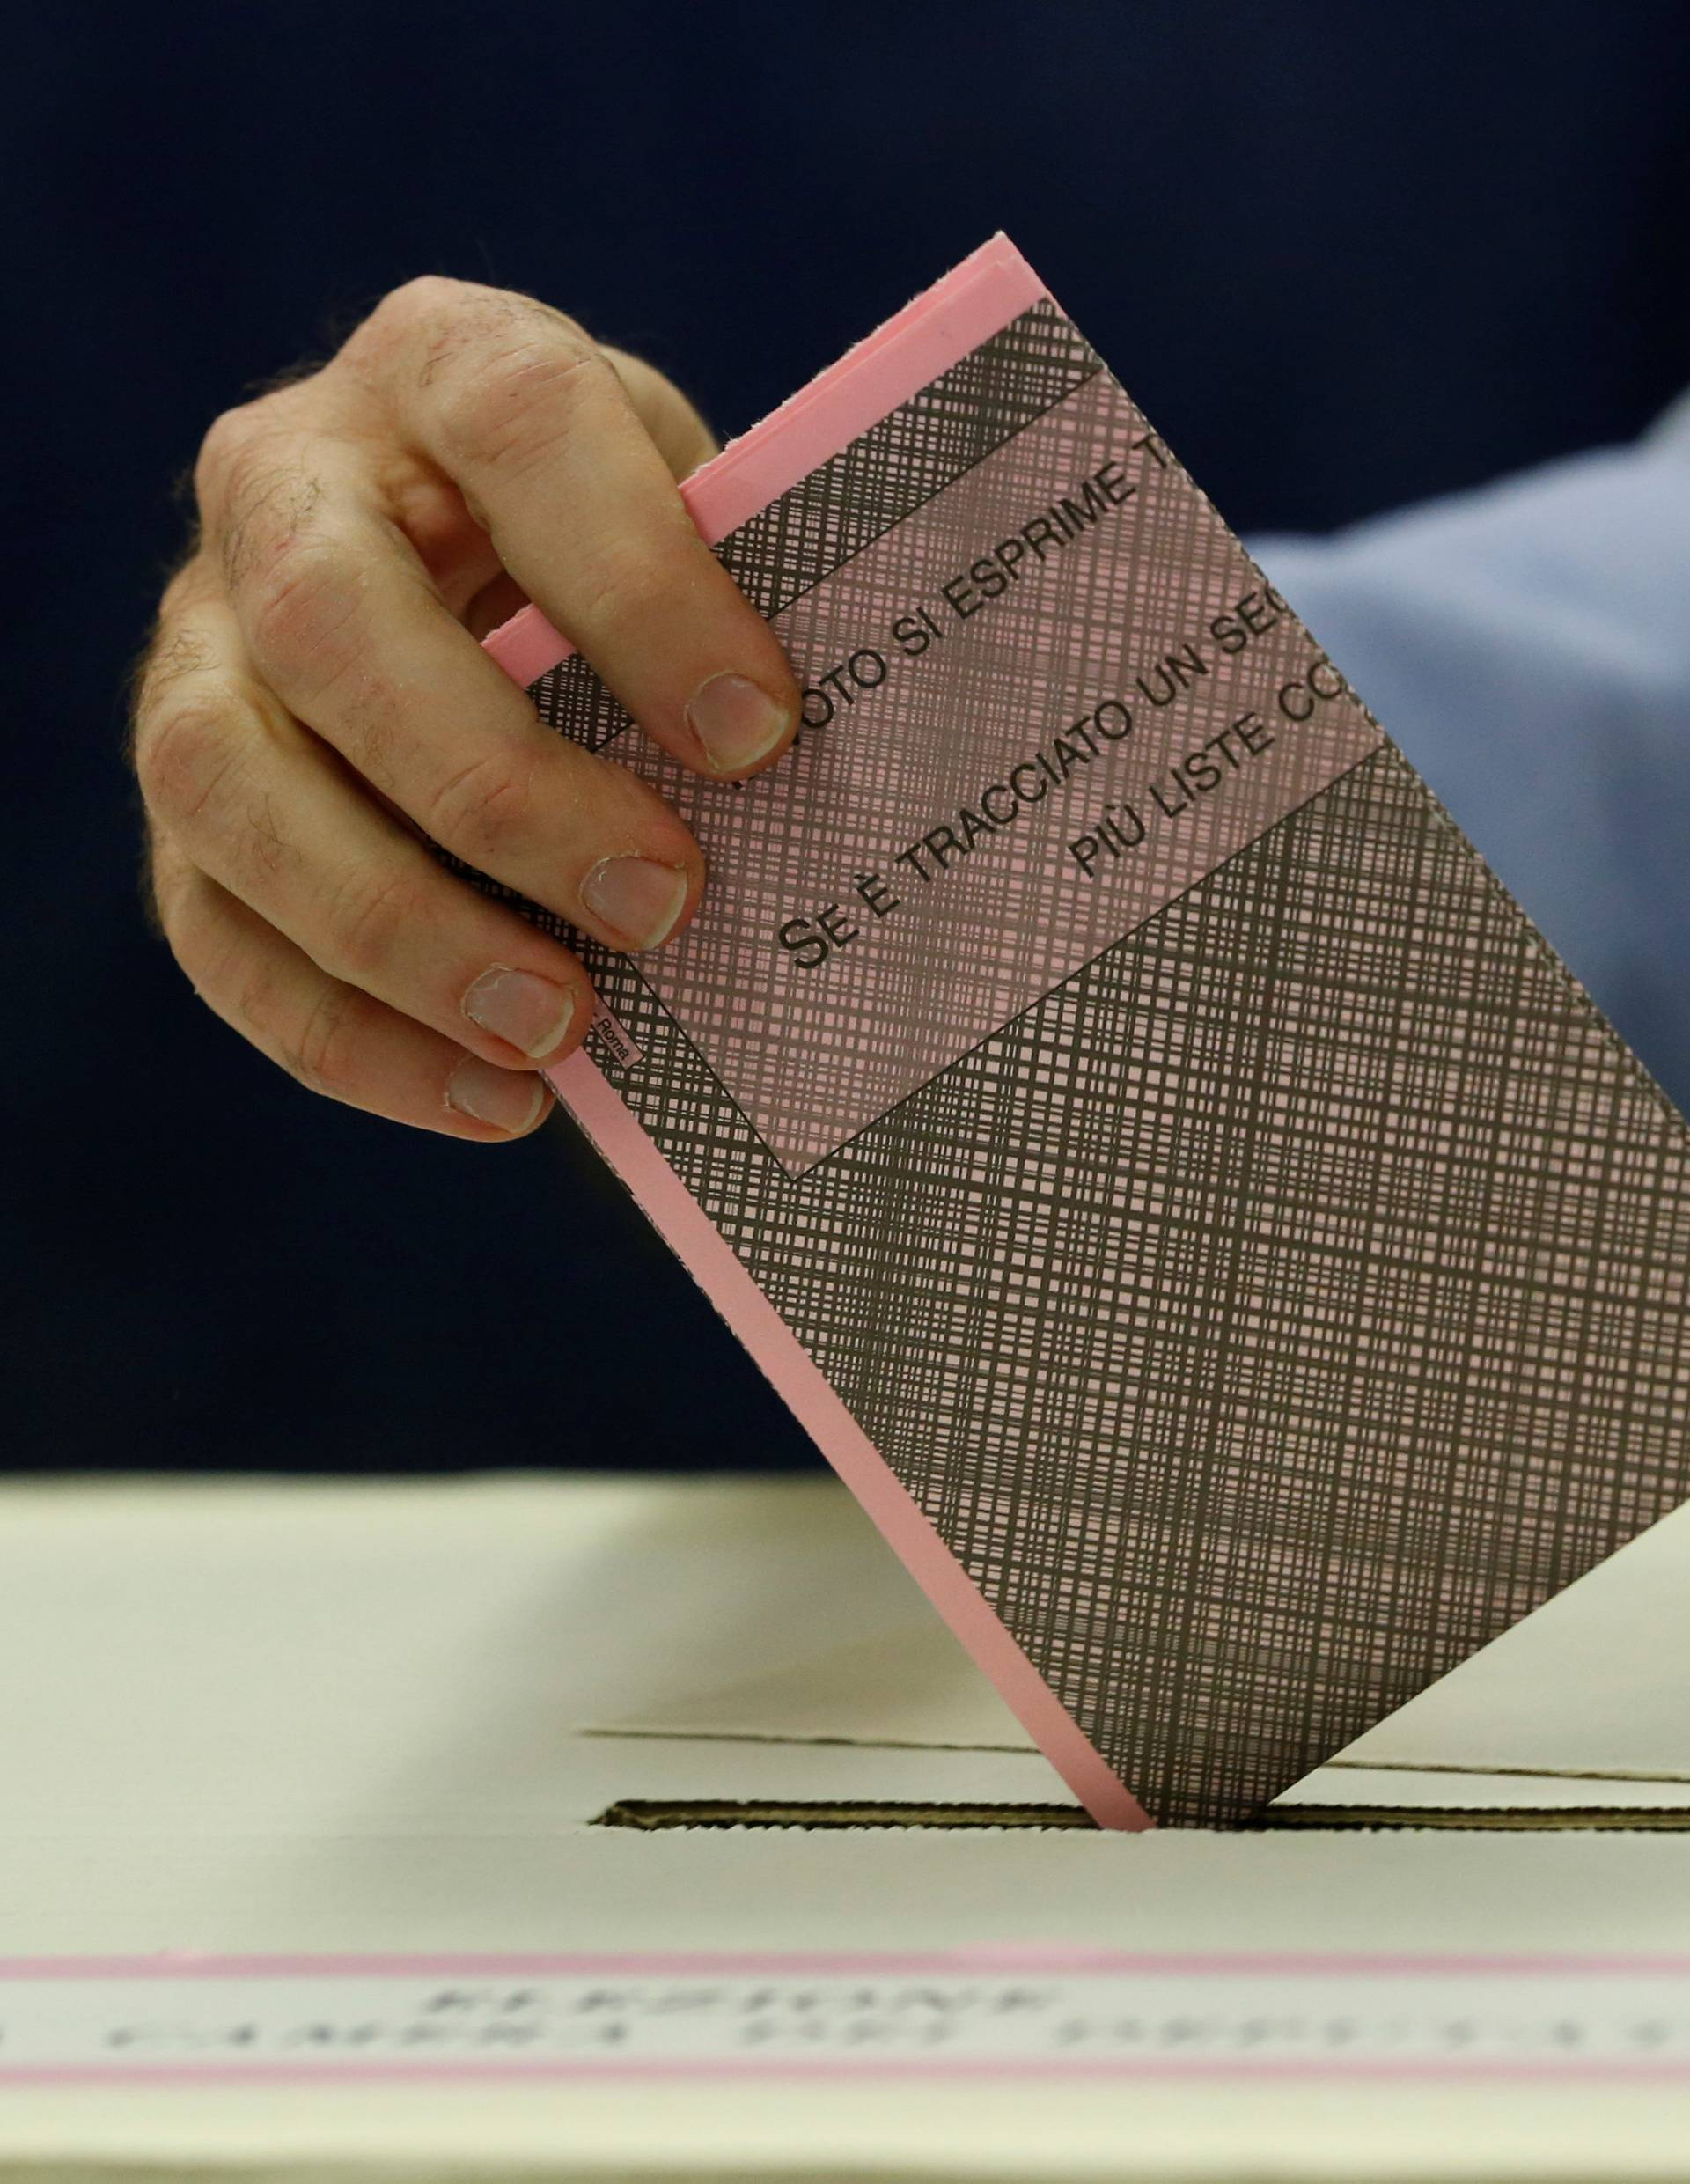 A man casts his vote at a polling station in Milan